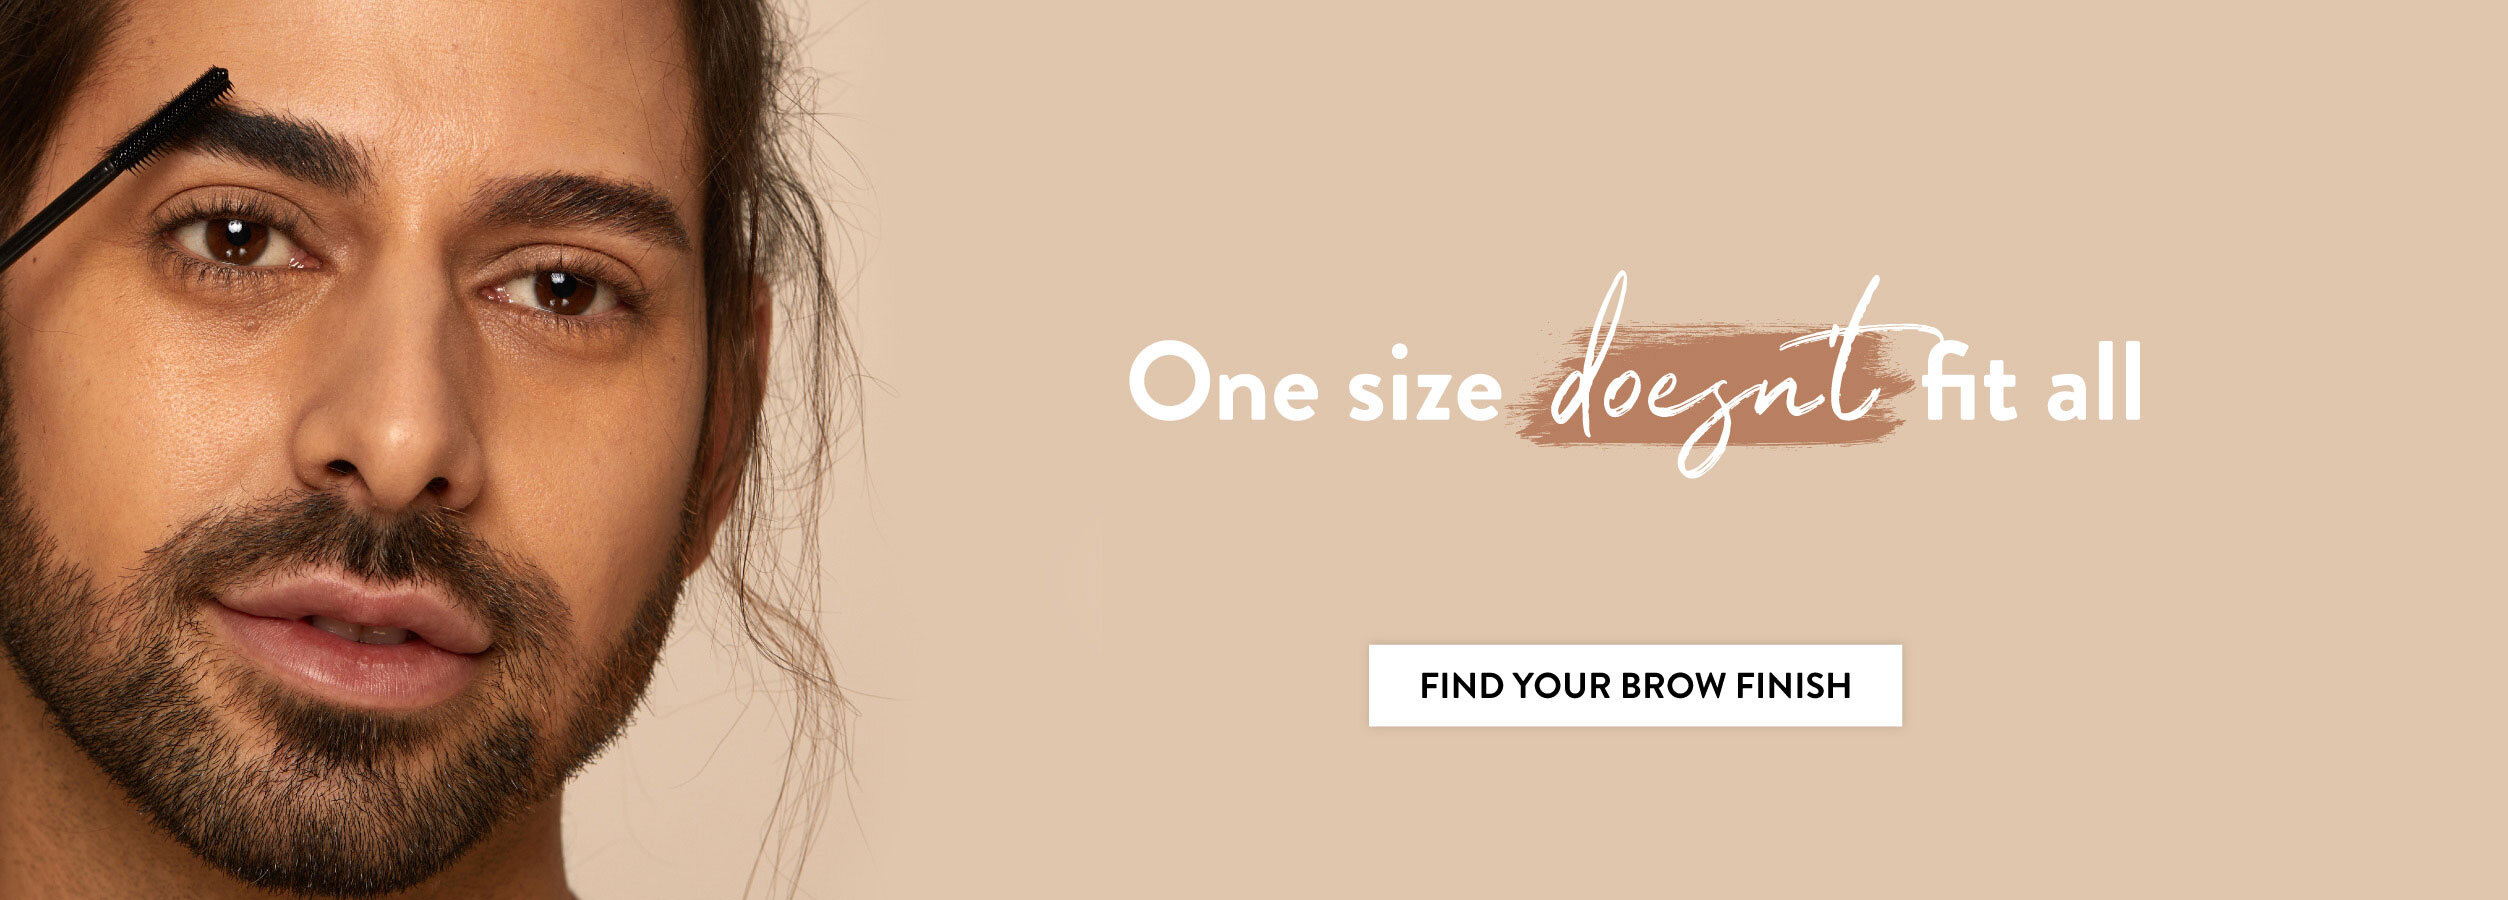 Bespoke Your Brows